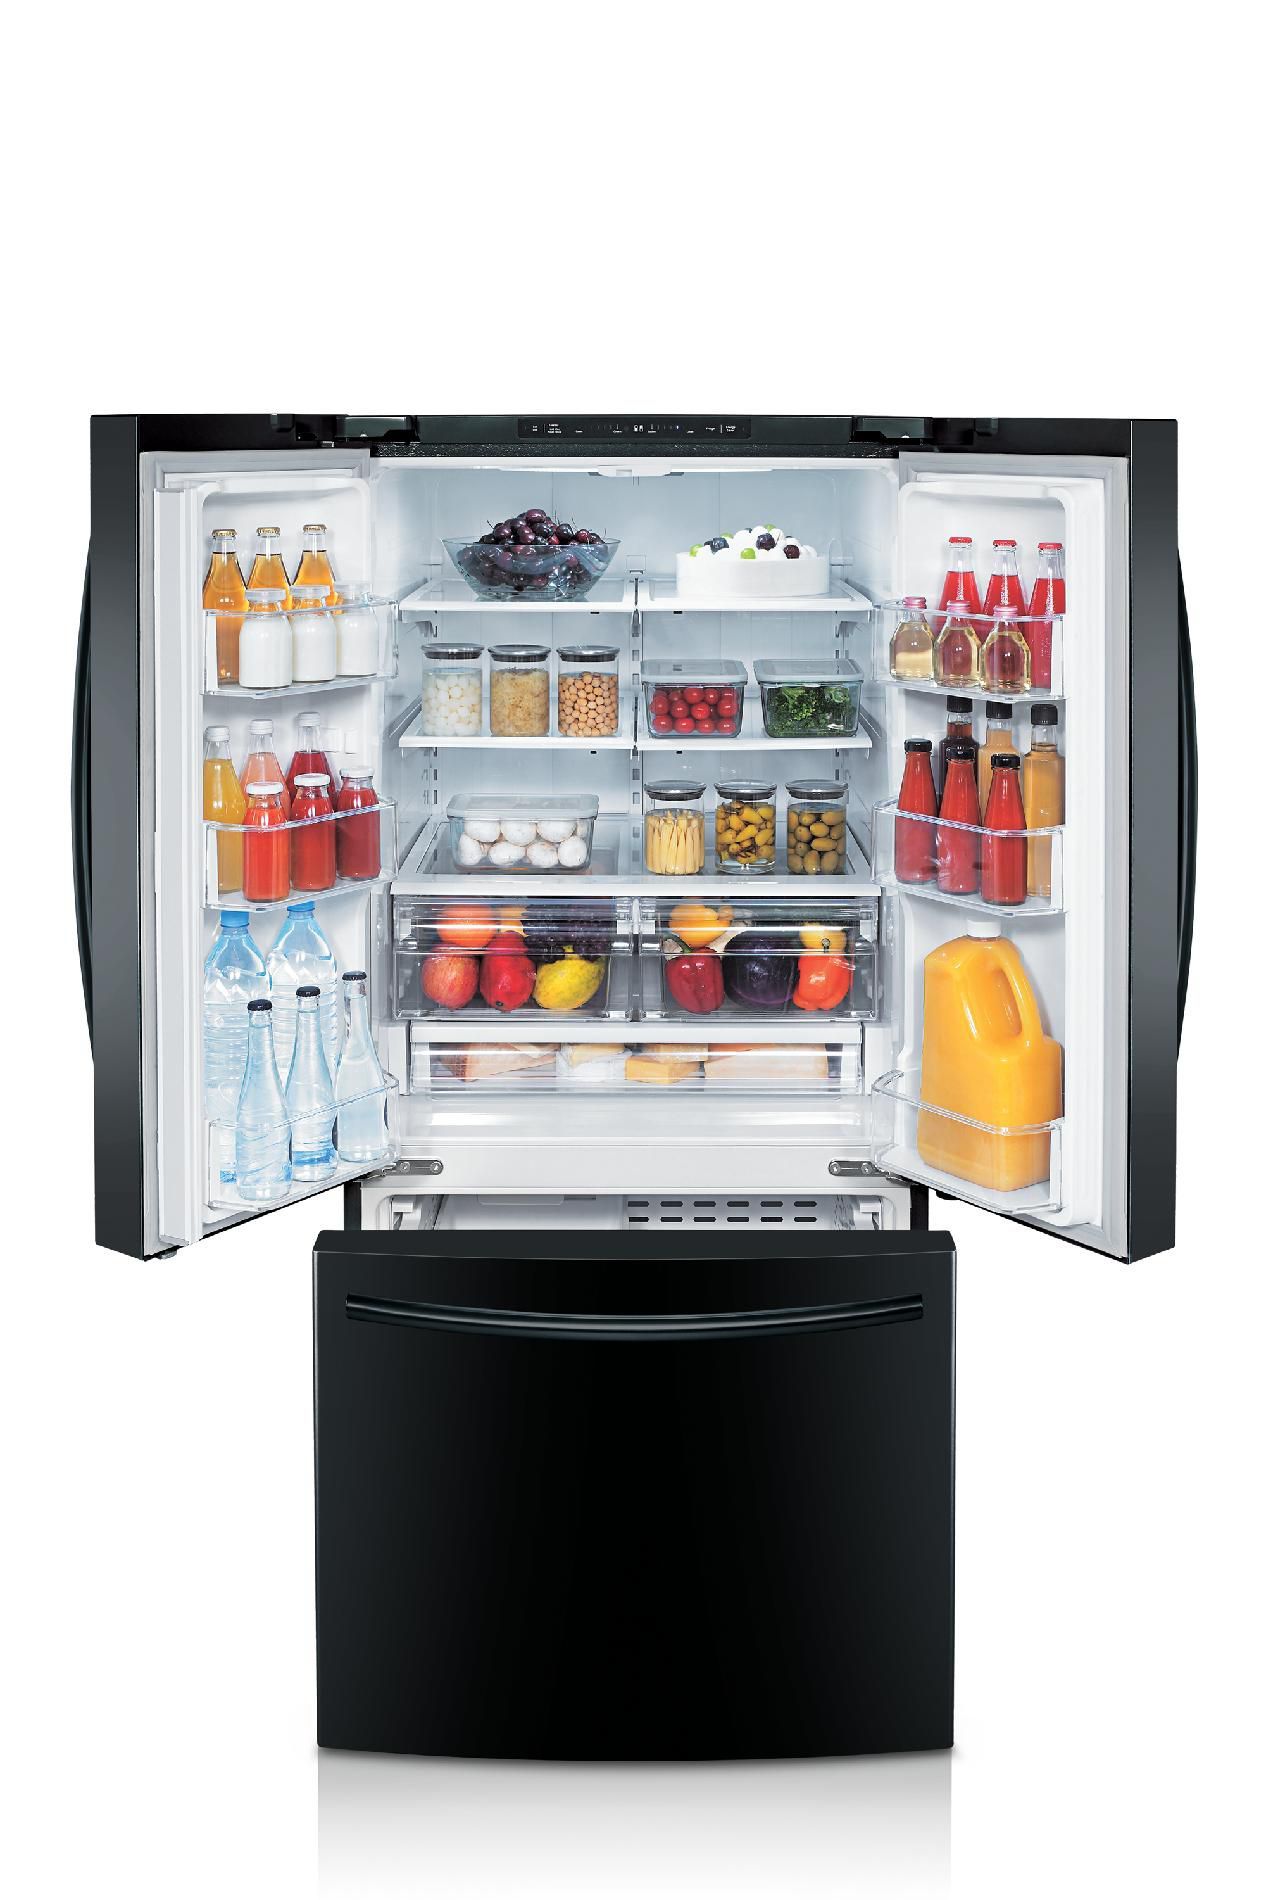 Samsung 22 cu. ft. French Door Refrigerator w/ Internal Water Dispenser - Black